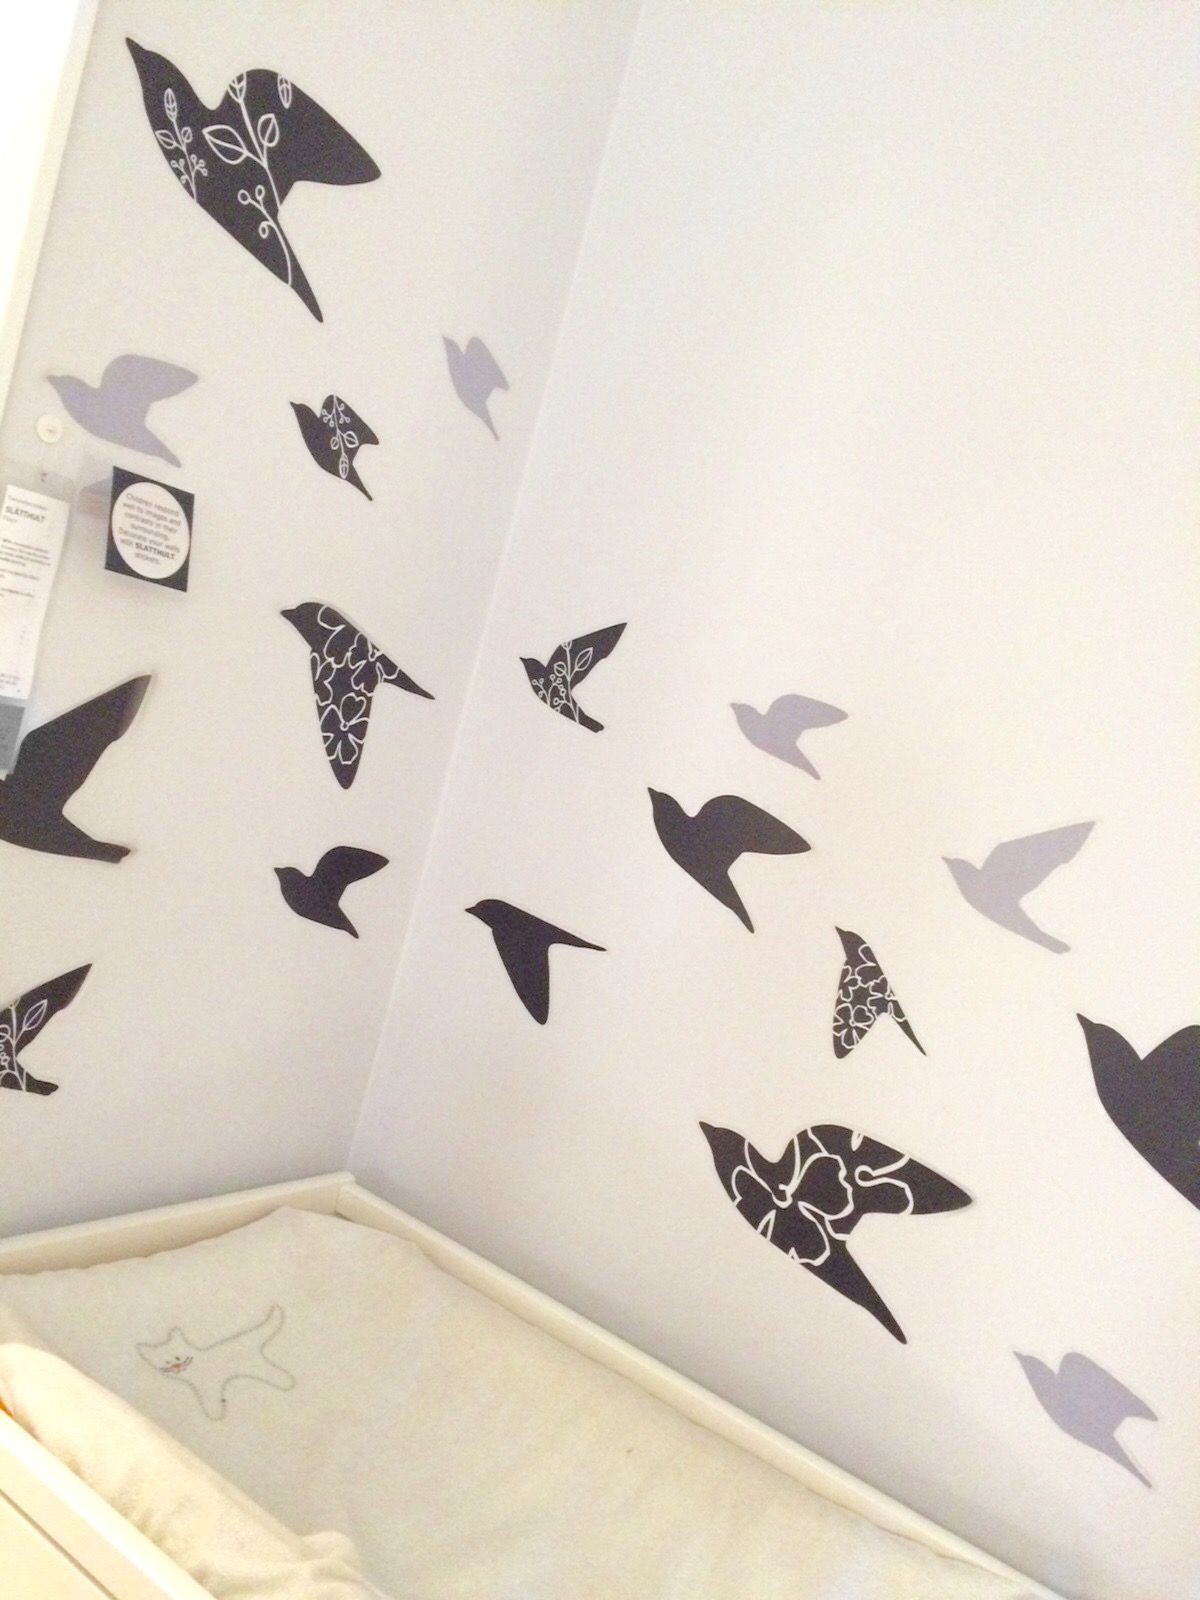 This was taken by me in IKEA #wallstickers #IKEA